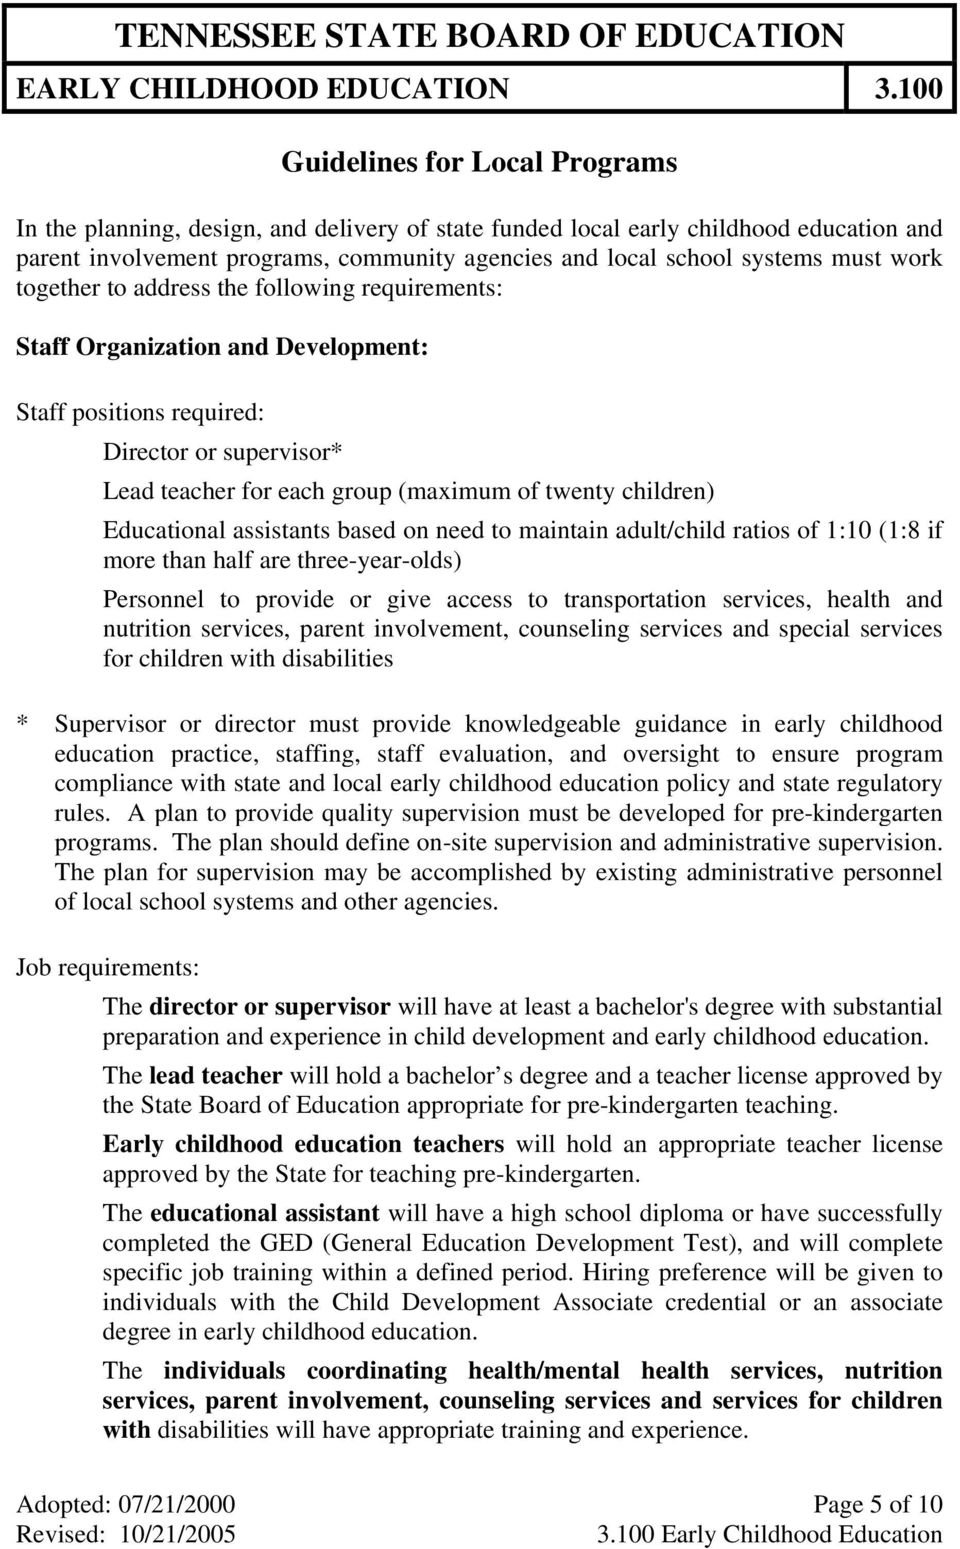 Educational assistants based on need to maintain adult/child ratios of 1:10 (1:8 if more than half are three-year-olds) Personnel to provide or give access to transportation services, health and